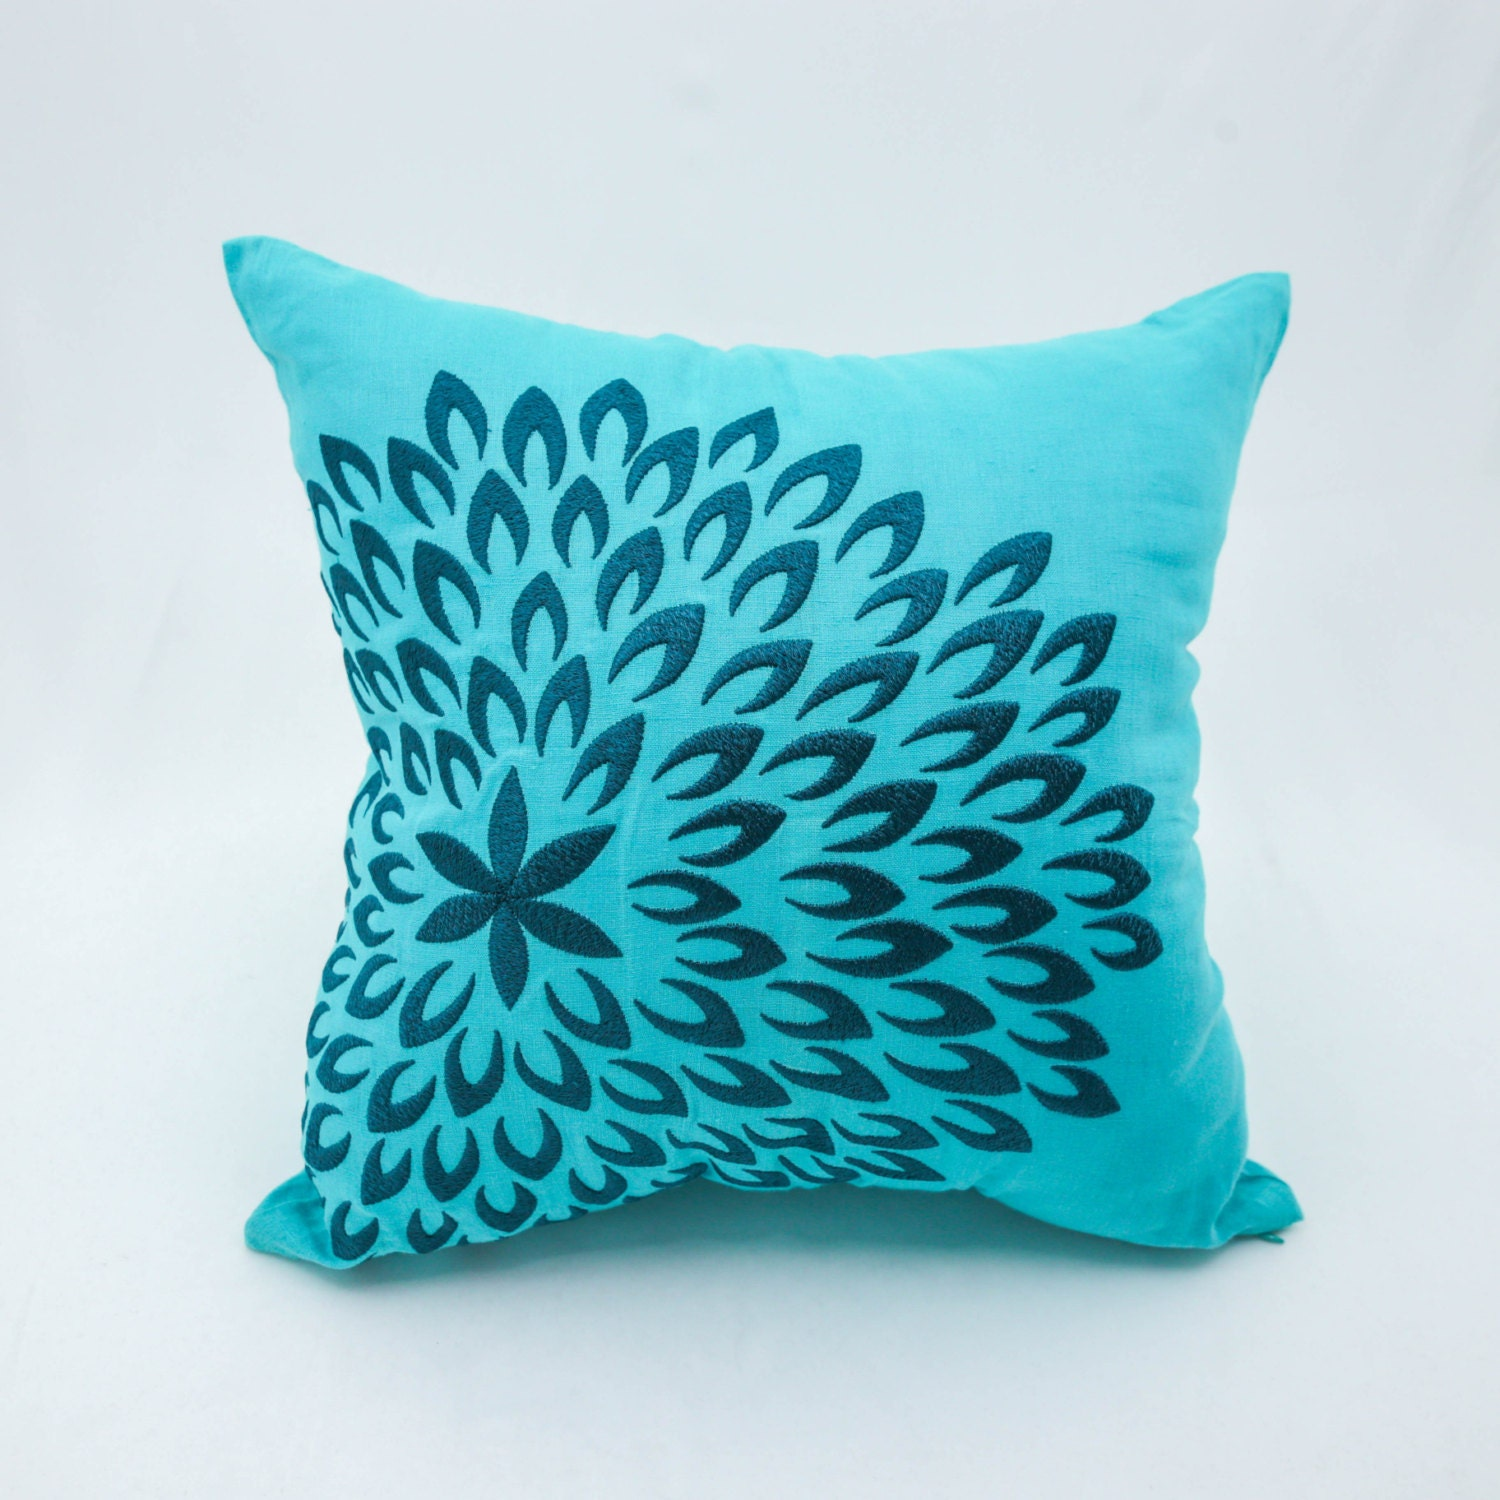 Throw Pillow Covers Teal : Teal Throw Pillow Cover Teal Linen Pillow Deep Blue Floral